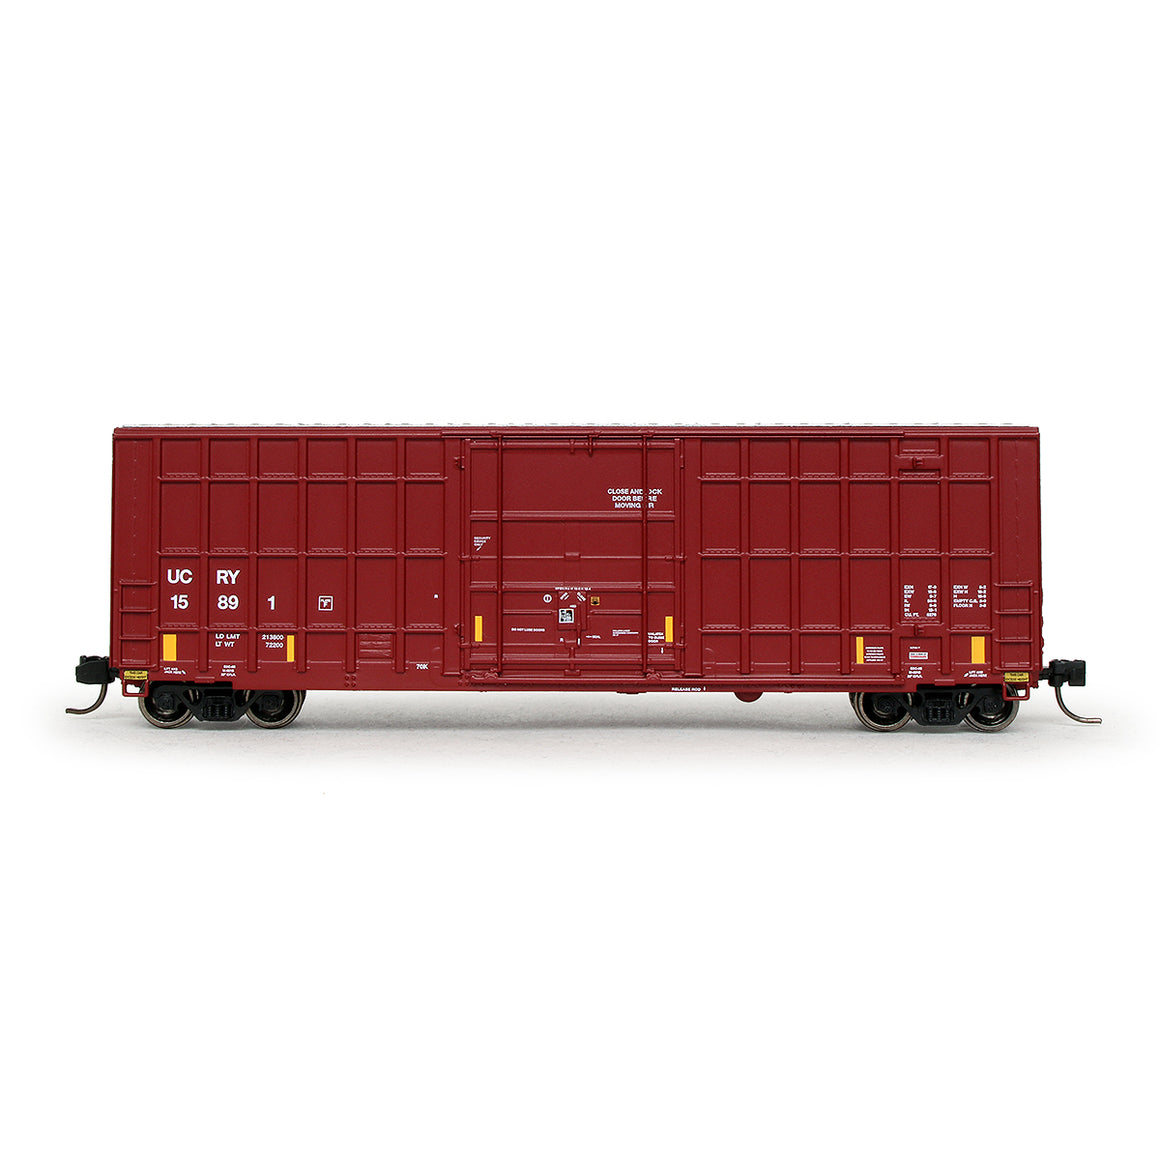 N Scale: Trinity 6275 Boxcar - Utah Central Railway - '2017 As-Delivered'